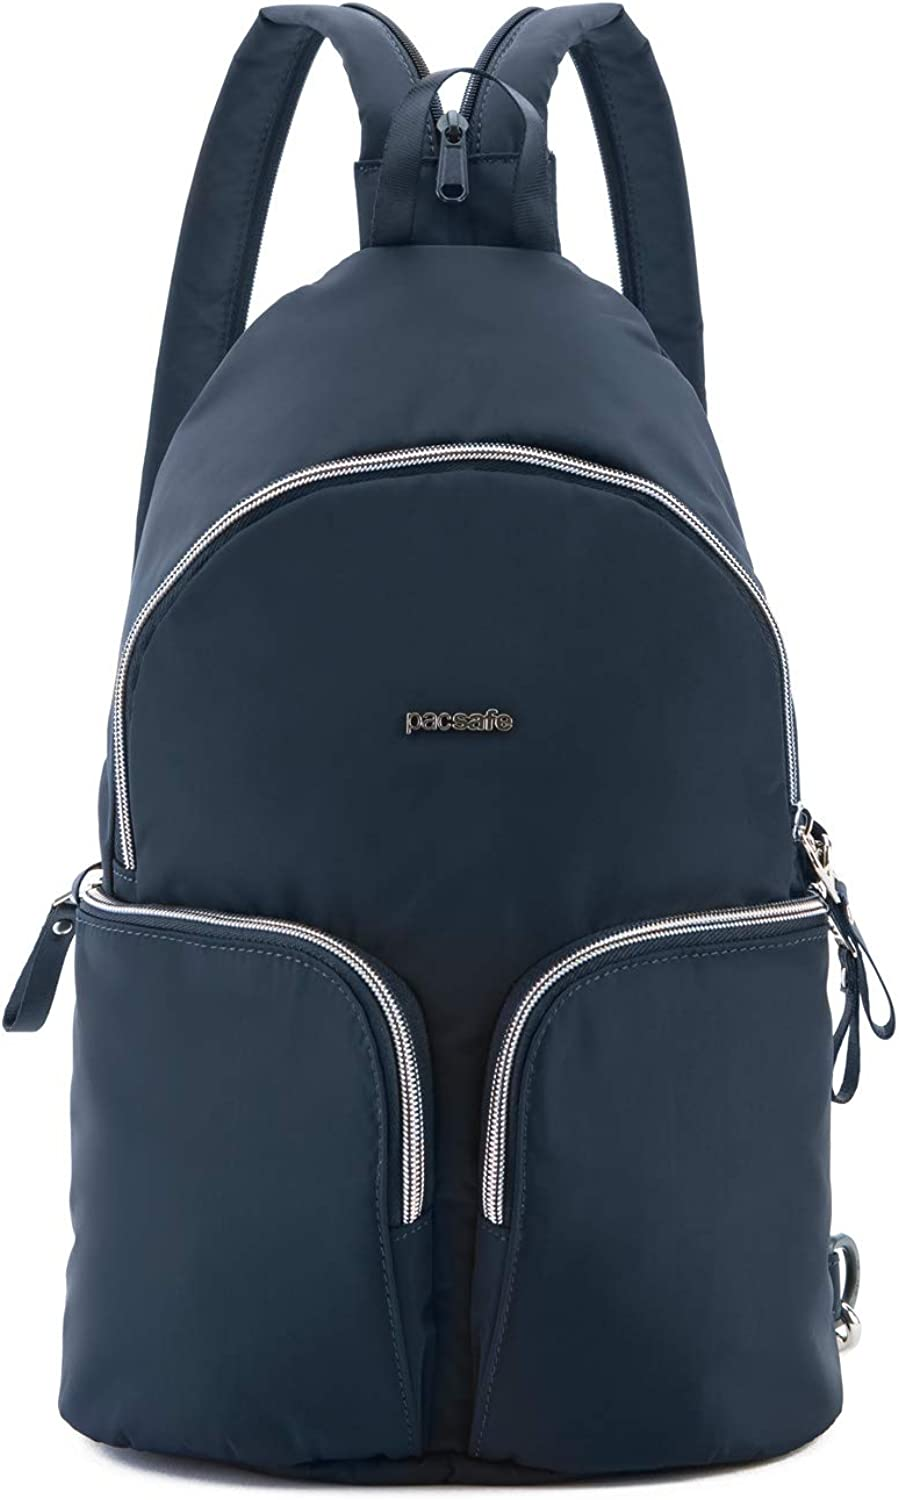 Pacsafe Womens Stylesafe Anti-Theft Convertible Sling to Backpack